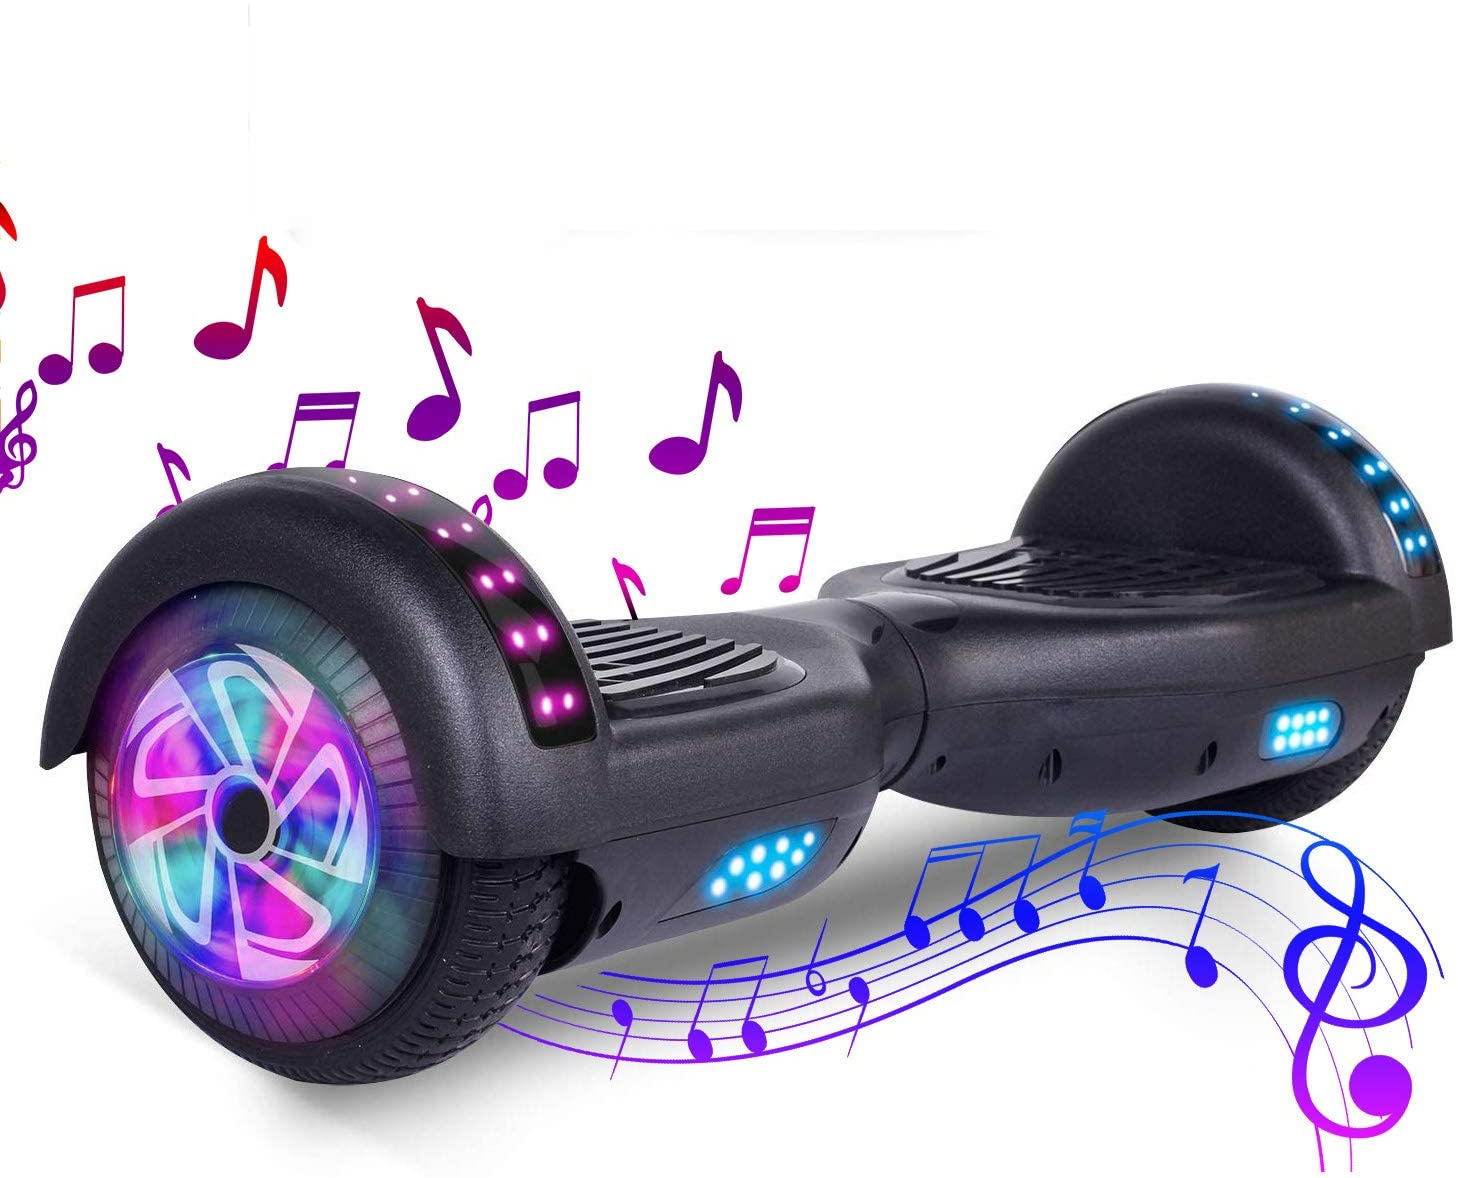 Smart Balance Electric Scooter Hoverboard Bluetooth Speaker Motorized Adult  Roller Hover Standing Drift Board: Buy Online at Best Prices in Pakistan |  Daraz.pk